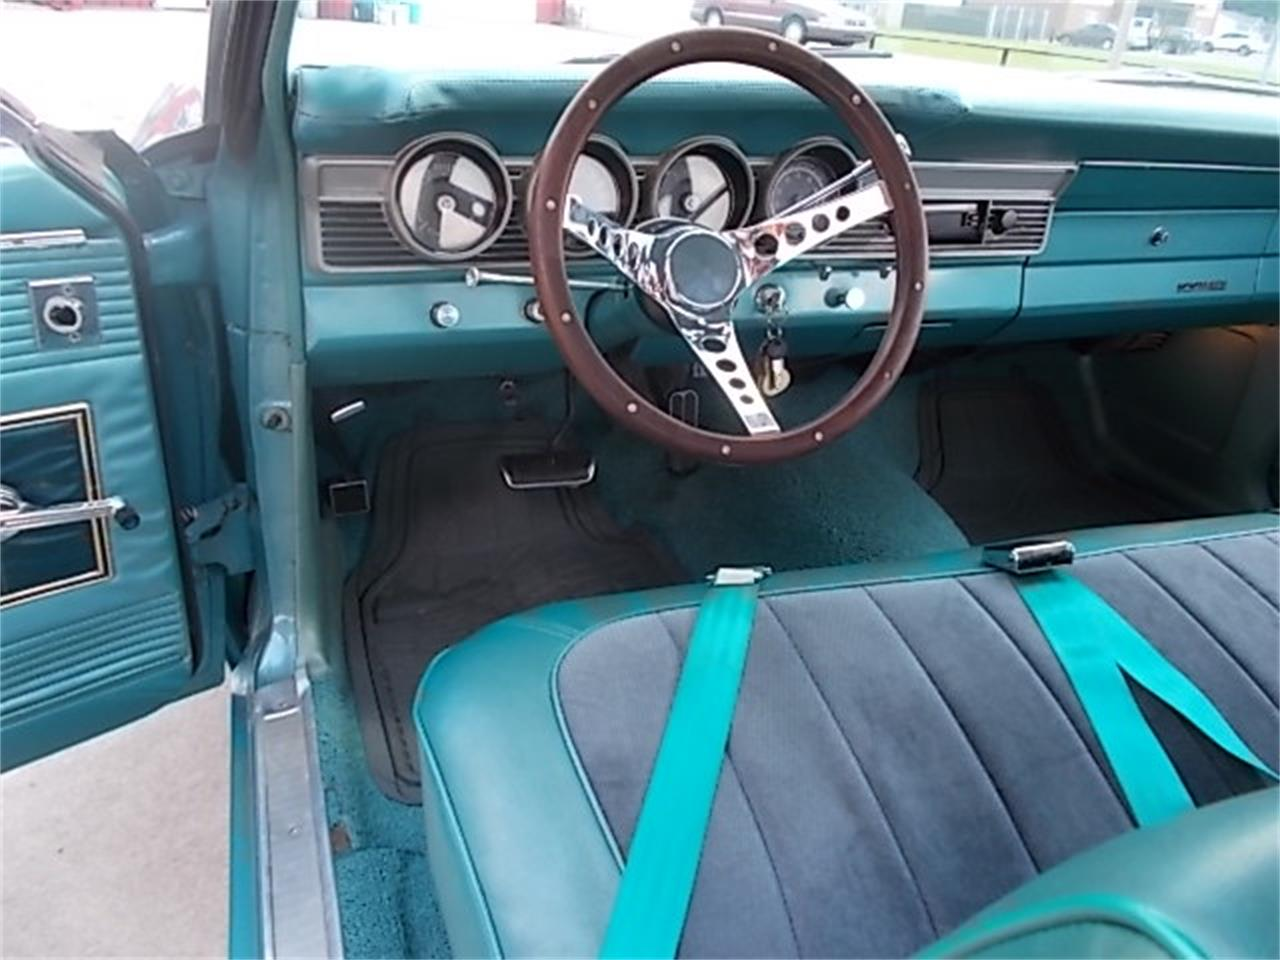 1967 Mercury 2-Dr Hardtop (CC-1235270) for sale in Skiatook, Oklahoma